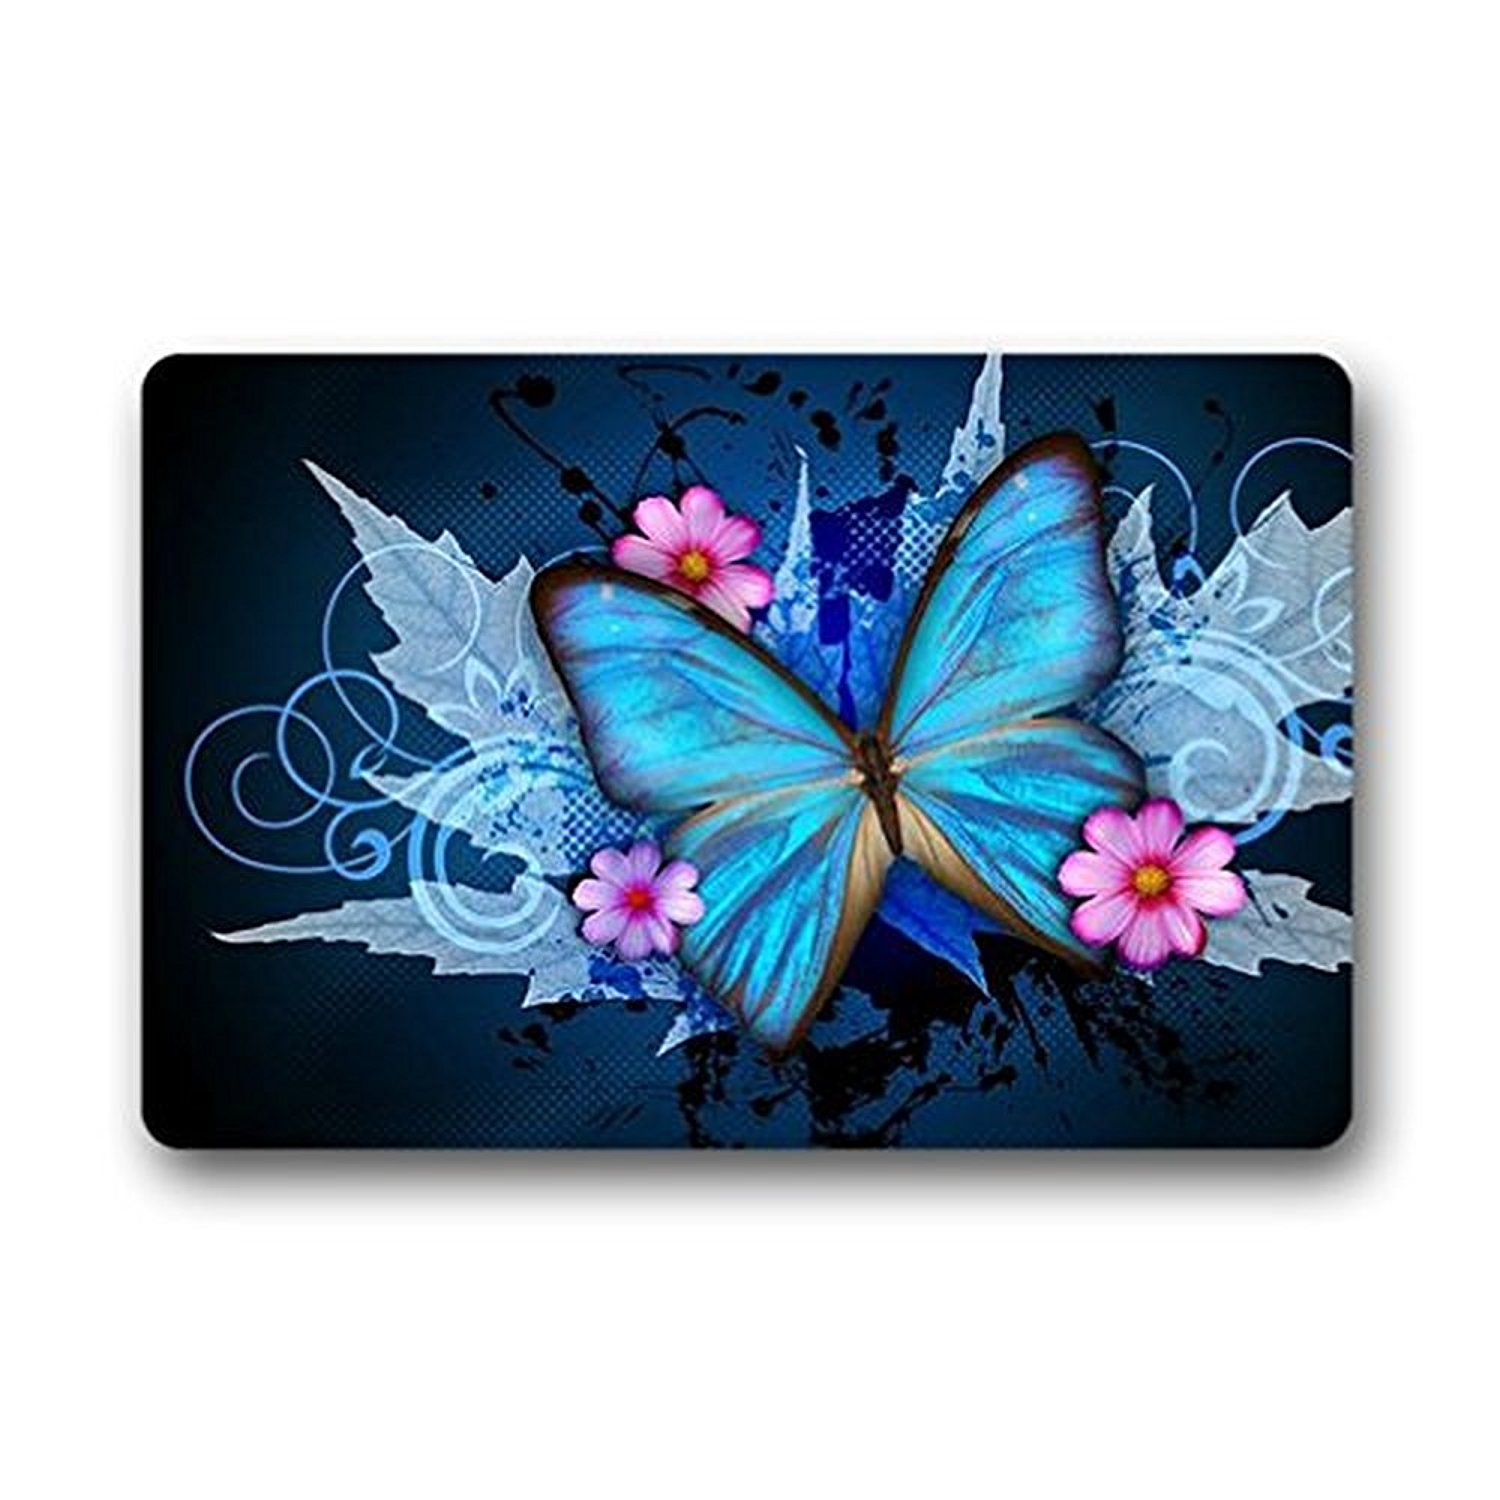 Homie Design Door Mats Little Fairy Butterfly Outdoor/Indoor Rubber Backed Non-Slip Front Door Entrance Doormat